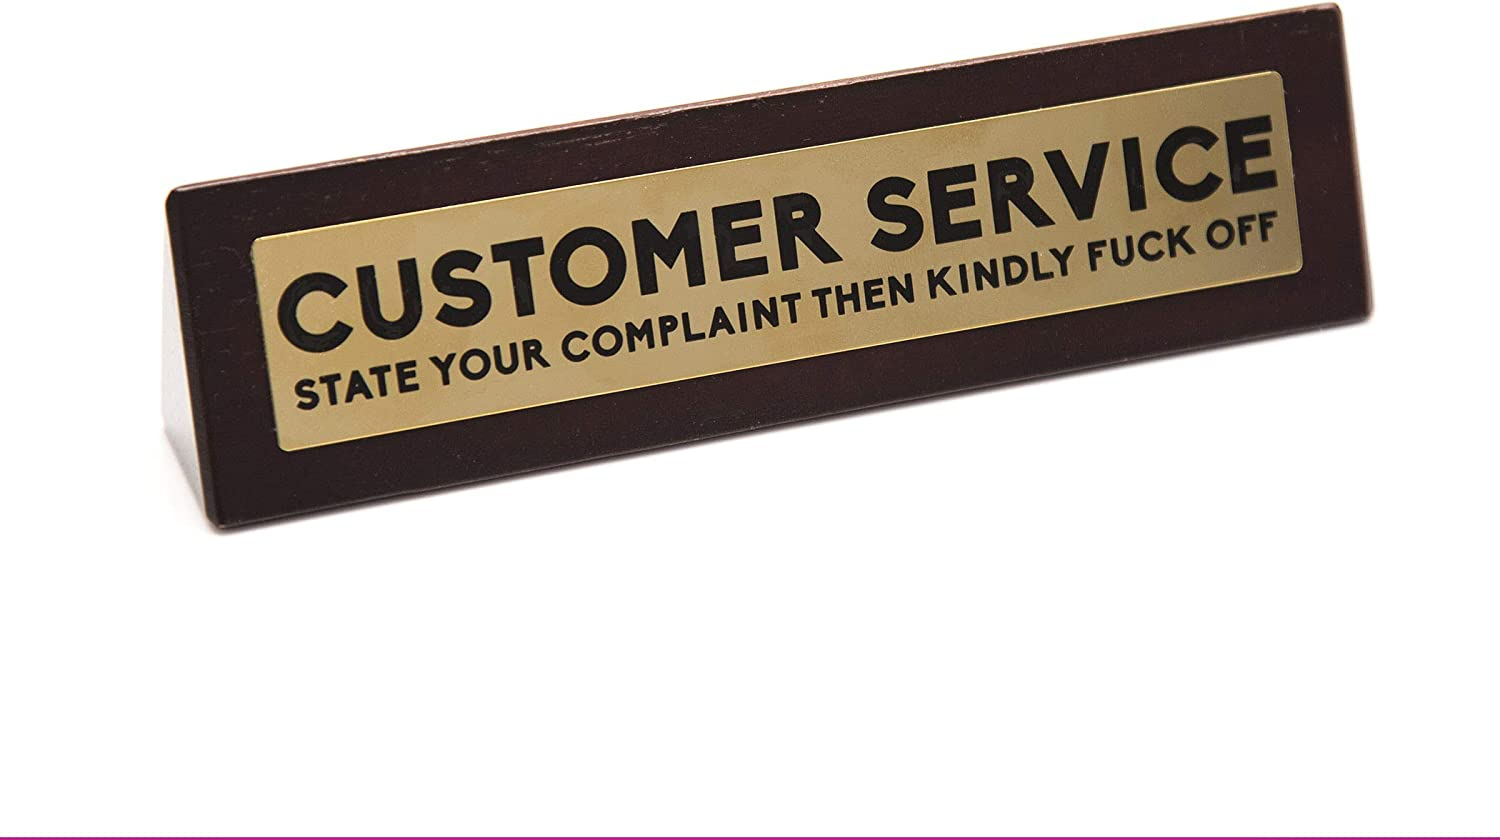 Boxer Gifts 'Customer Service - State Your Complaint Then Kindly Fck Off' Novelty Wooden Desk Warning Sign   Funny Office Humor Gift For Colleague Or Boss   4.5cm x 17.5cm